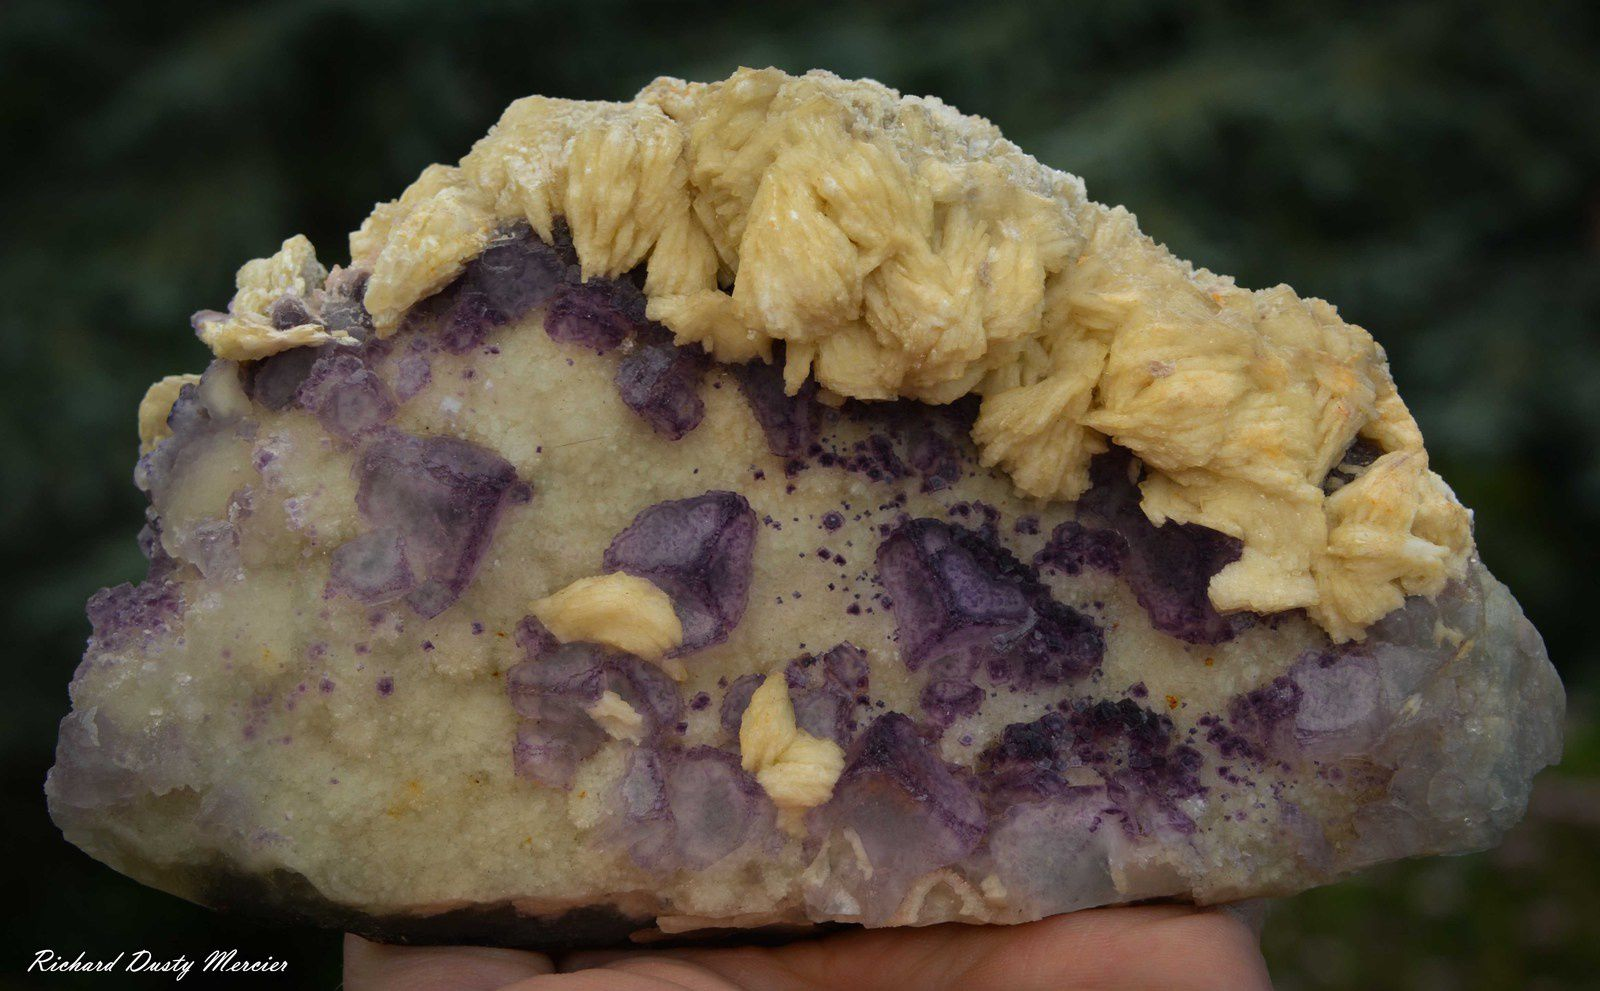 Fluorite Barite from Chenzu, China